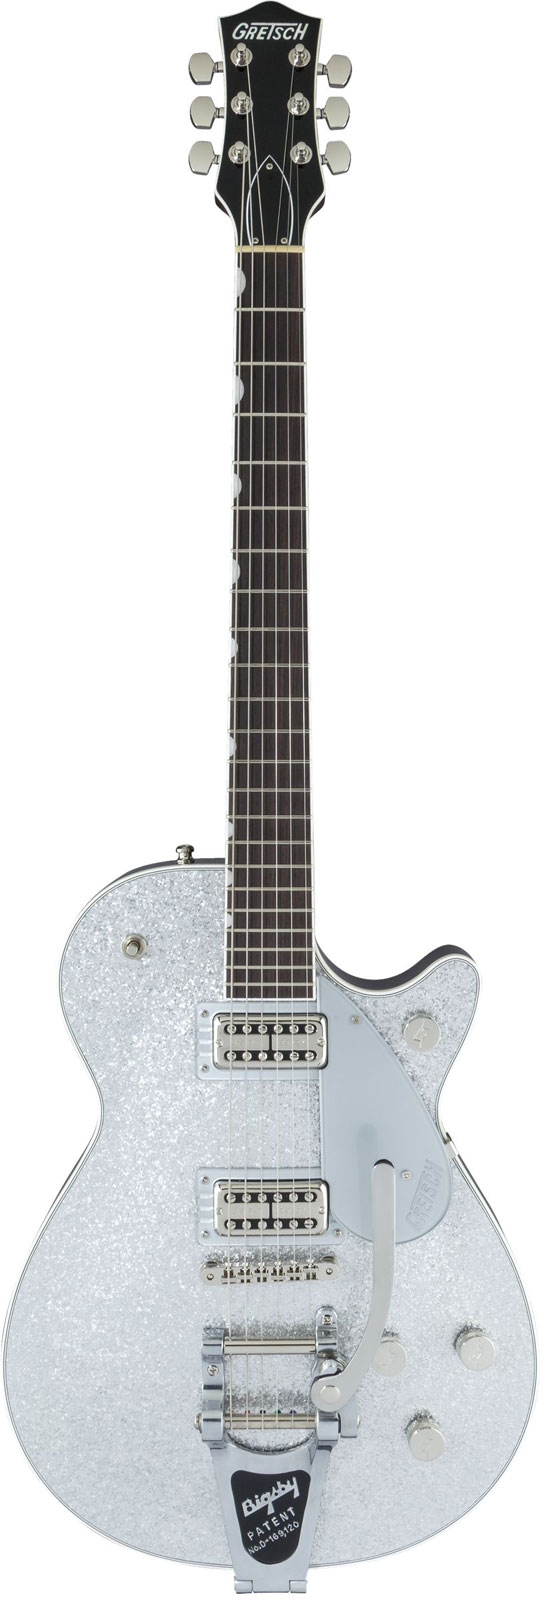 Gretsch Guitars G6129t Players Edition Jet Ft With Bigsby Rw Silver Sparkle